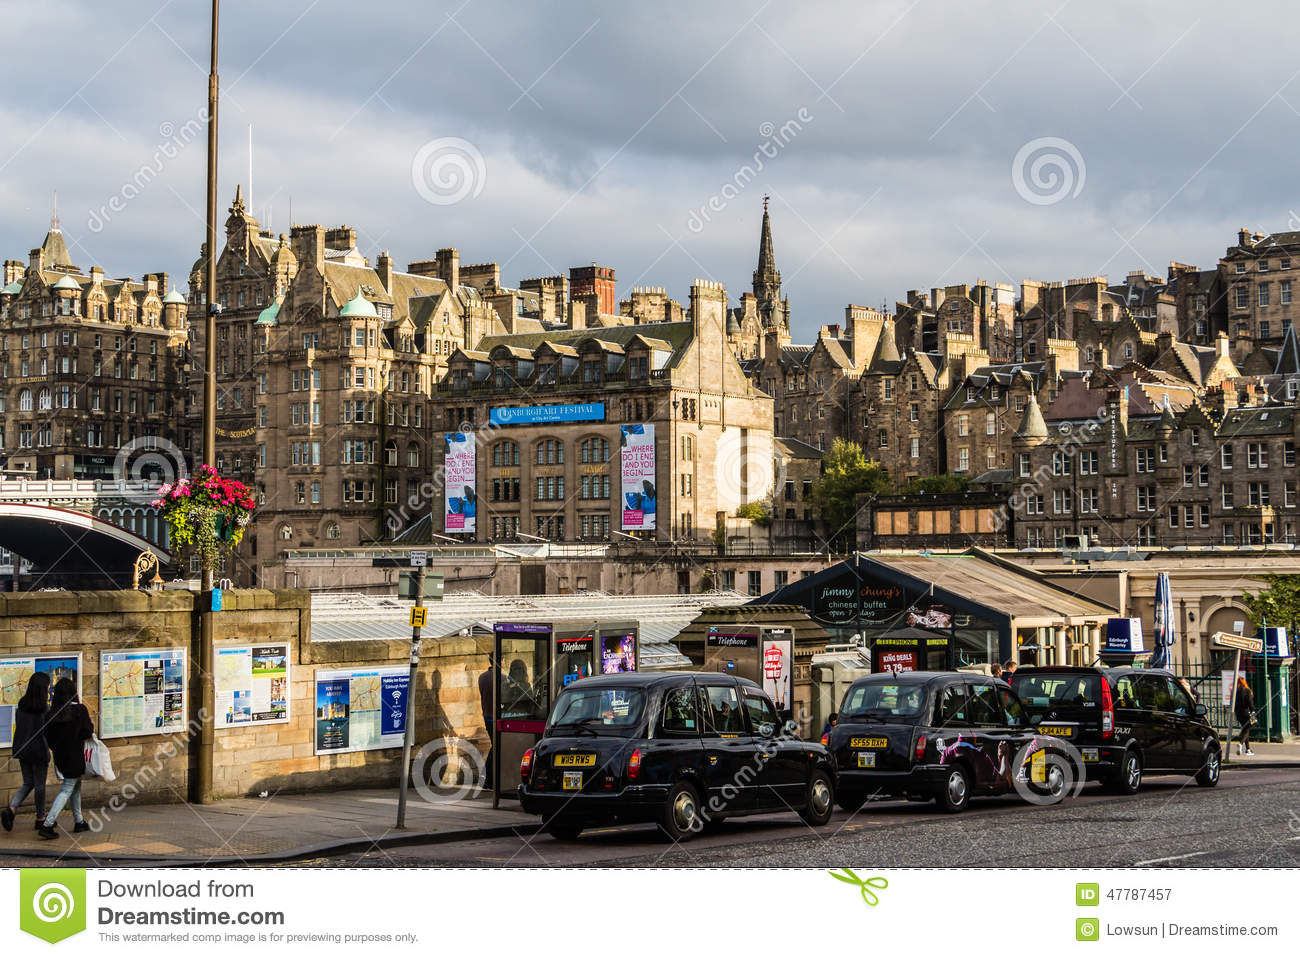 taxis parked in edinburgh scotland editorial photography. Black Bedroom Furniture Sets. Home Design Ideas